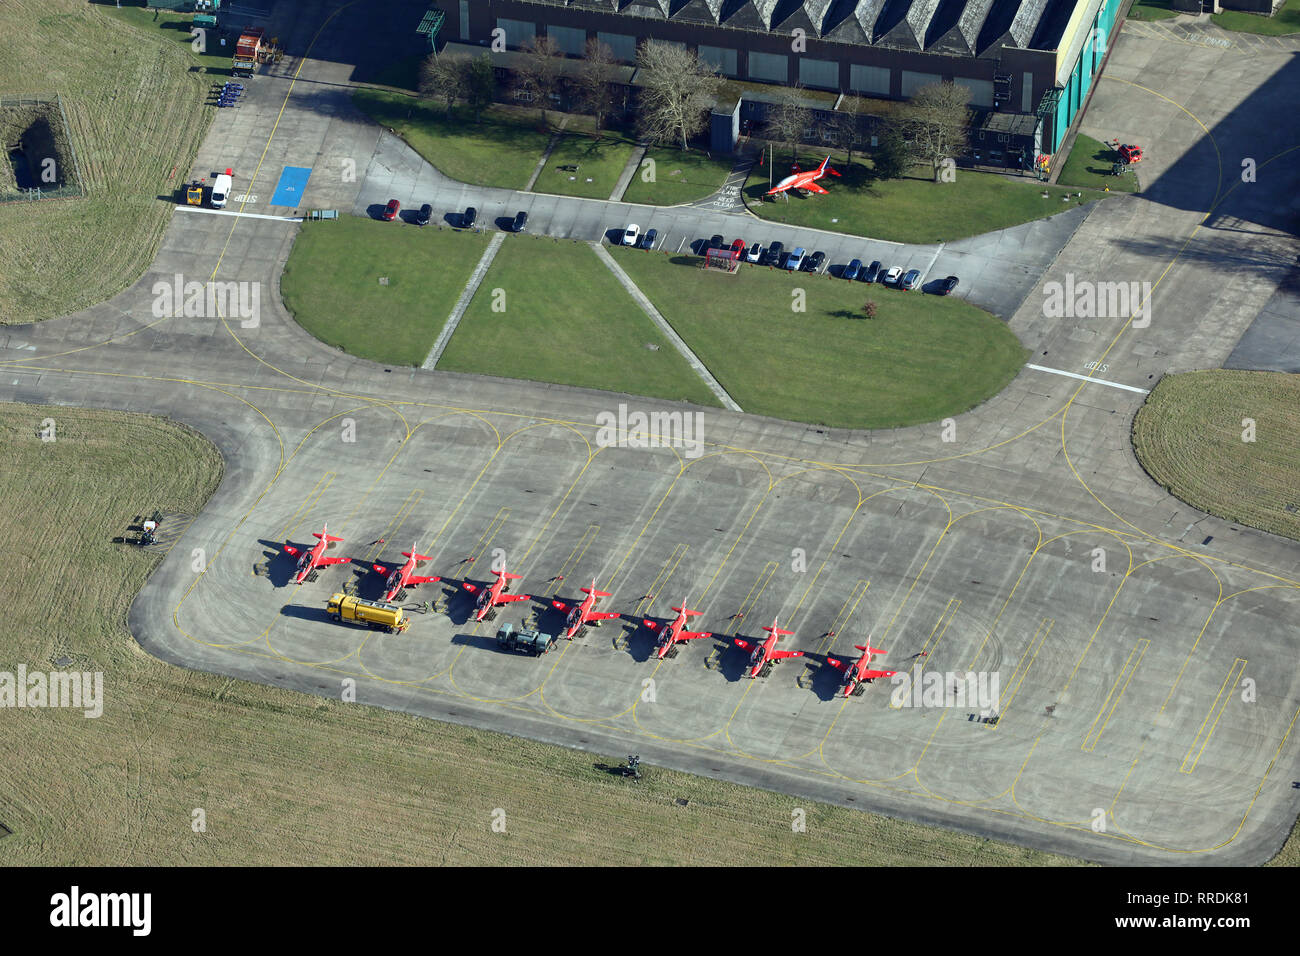 aerial view of the Red Arrows jets on the ground at RAF Scampton, Lincolnshire - Stock Image